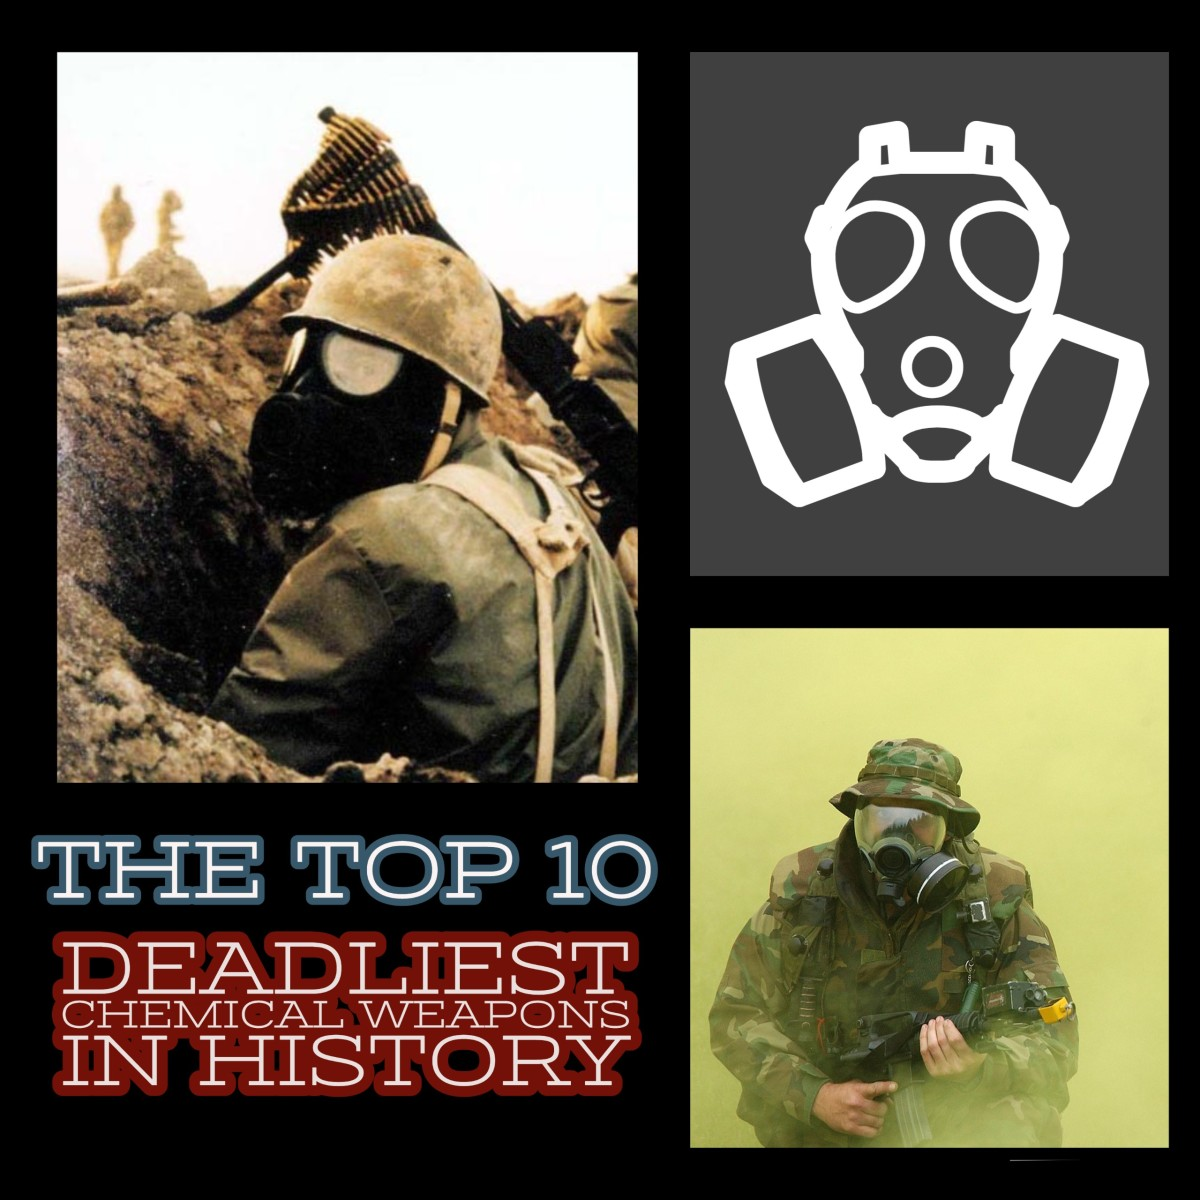 From Sarin Gas to VX agents, this article ranks the 10 deadliest chemical weapons in history.